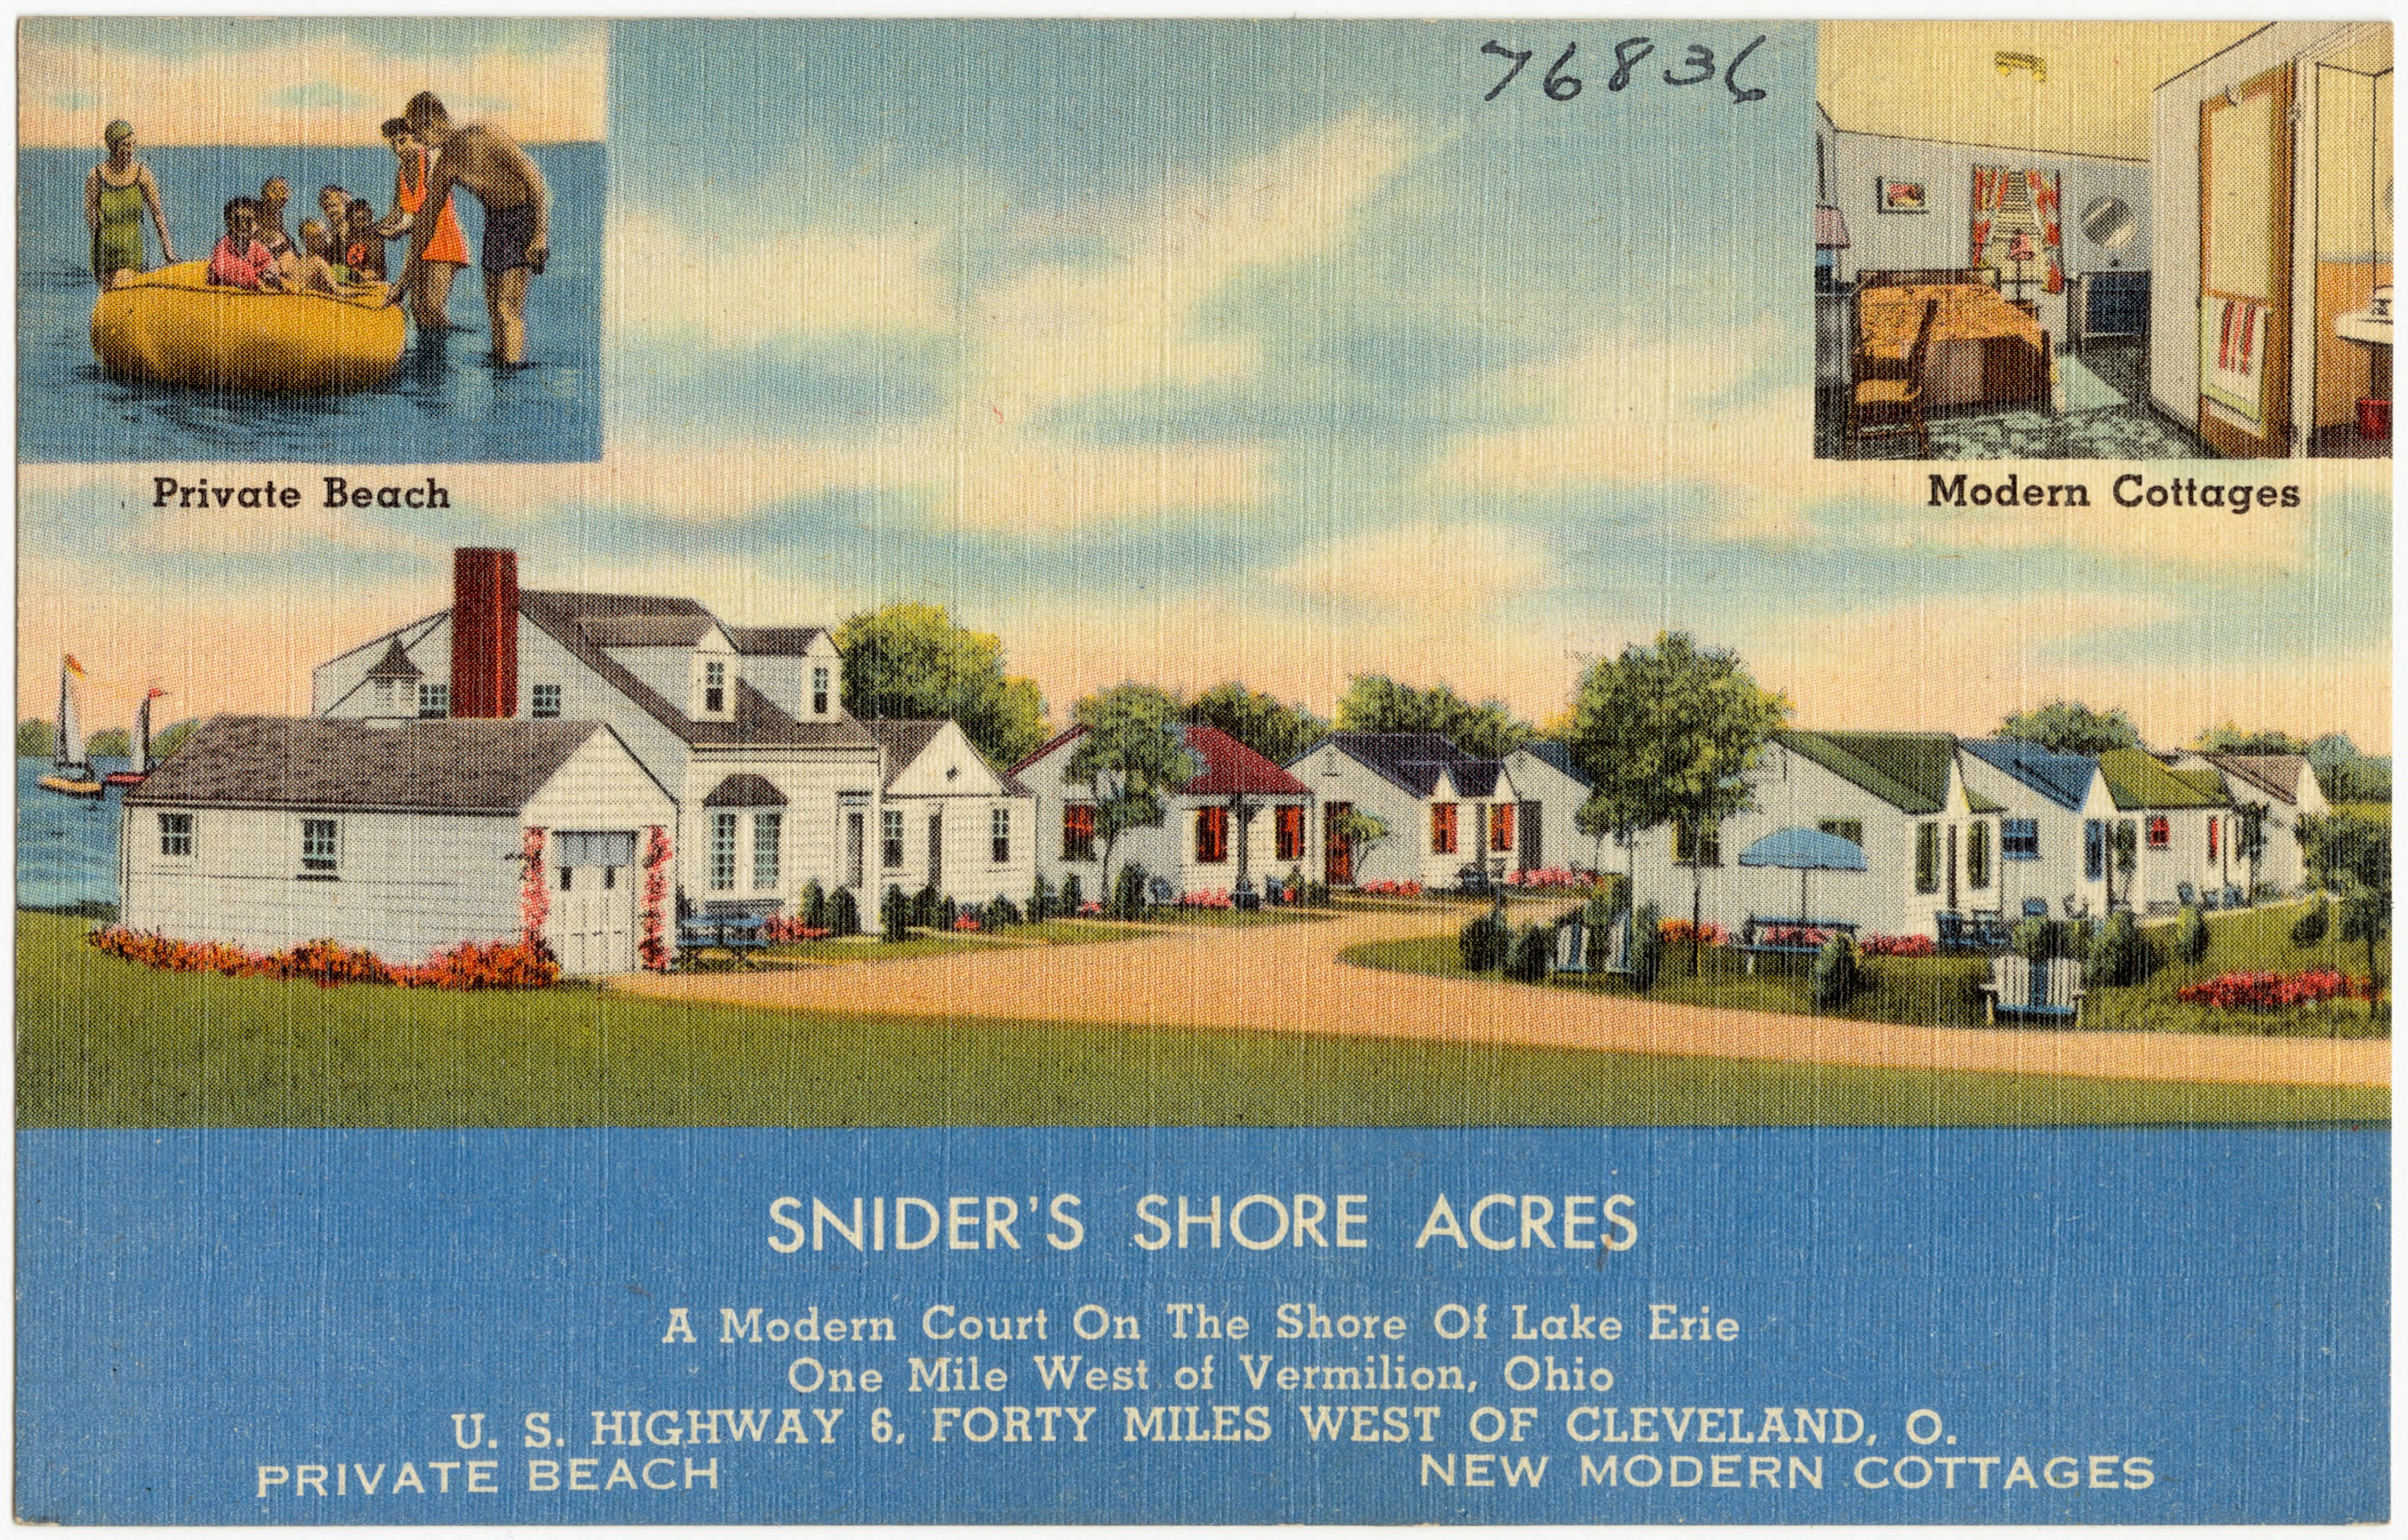 Ohio erie county vermilion - File Snider S Shore Acres A Modern Court On The Shore Of The Lake Erie